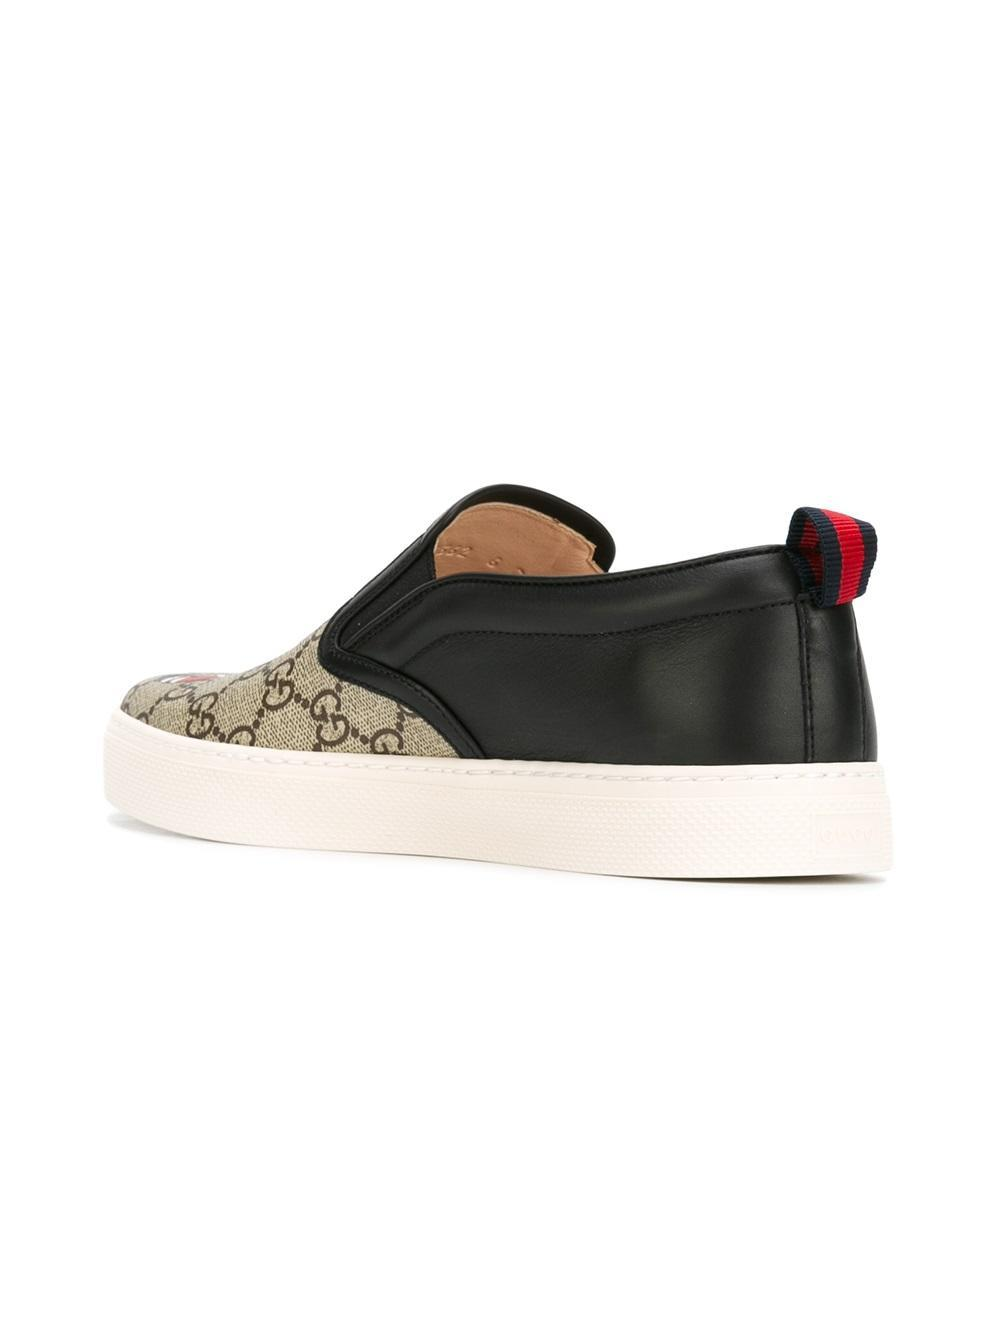 Lyst Gucci Gg Supreme Snake Slip On Sneakers In Black